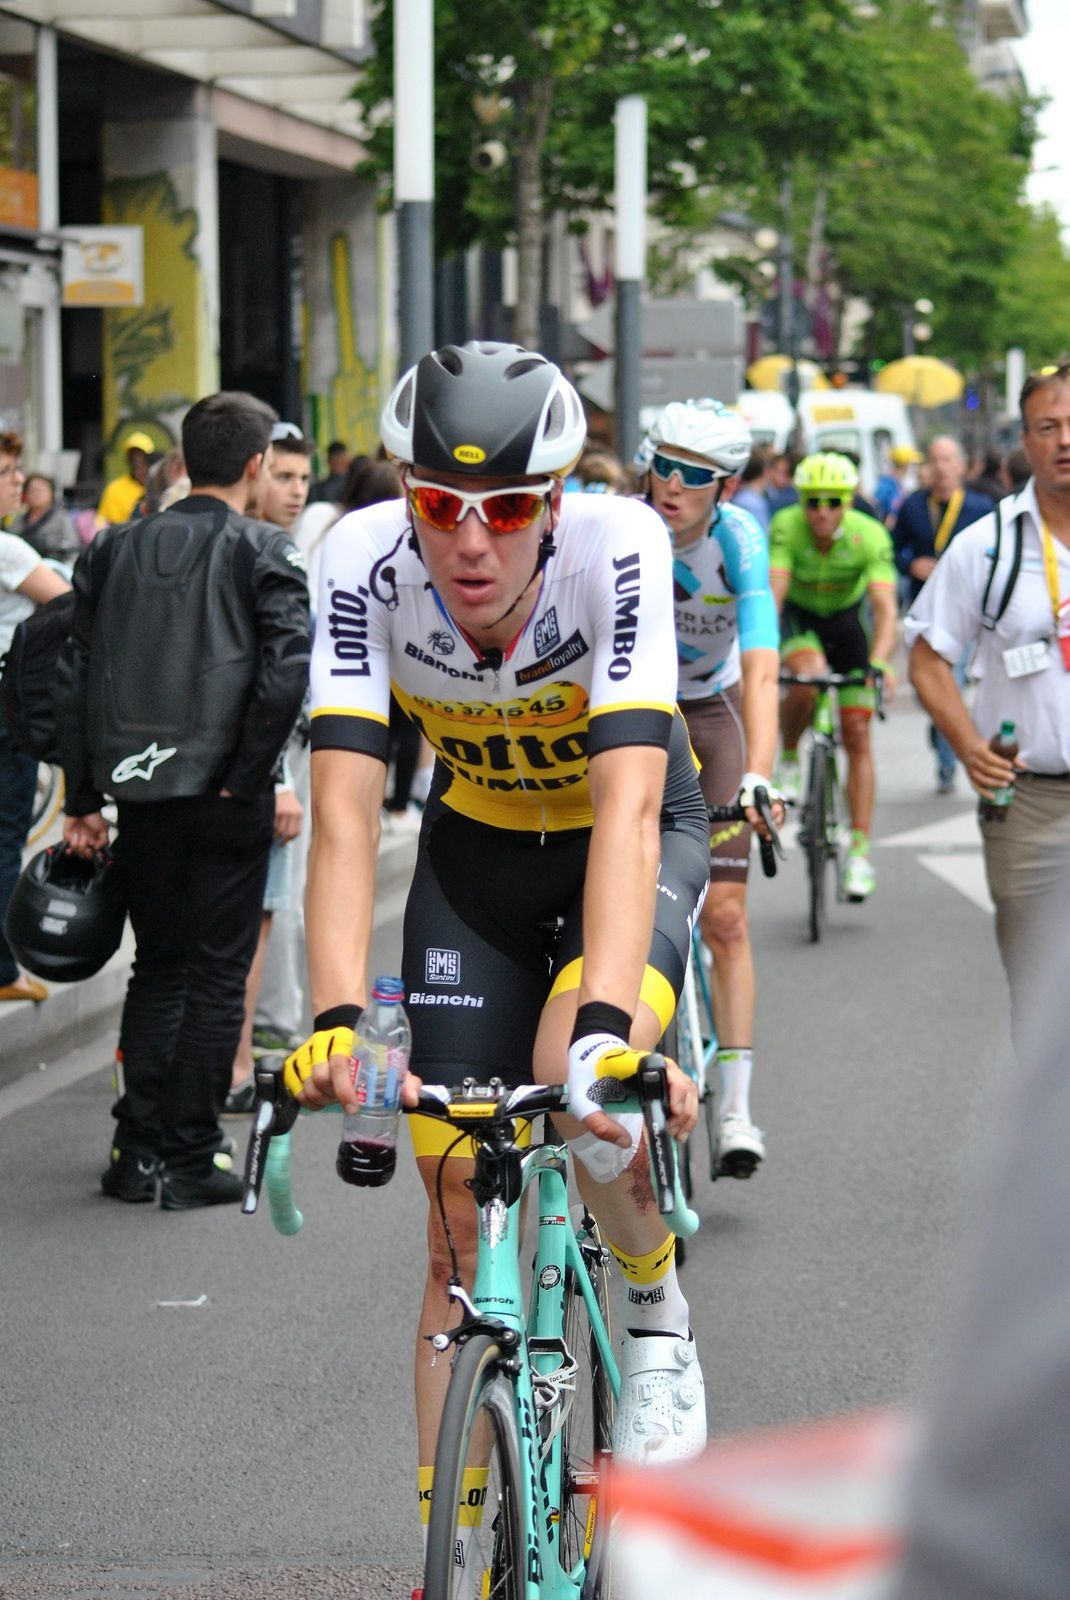 Angers: Etape du tour de France 2016. (Photo prise le 4.07.2016).